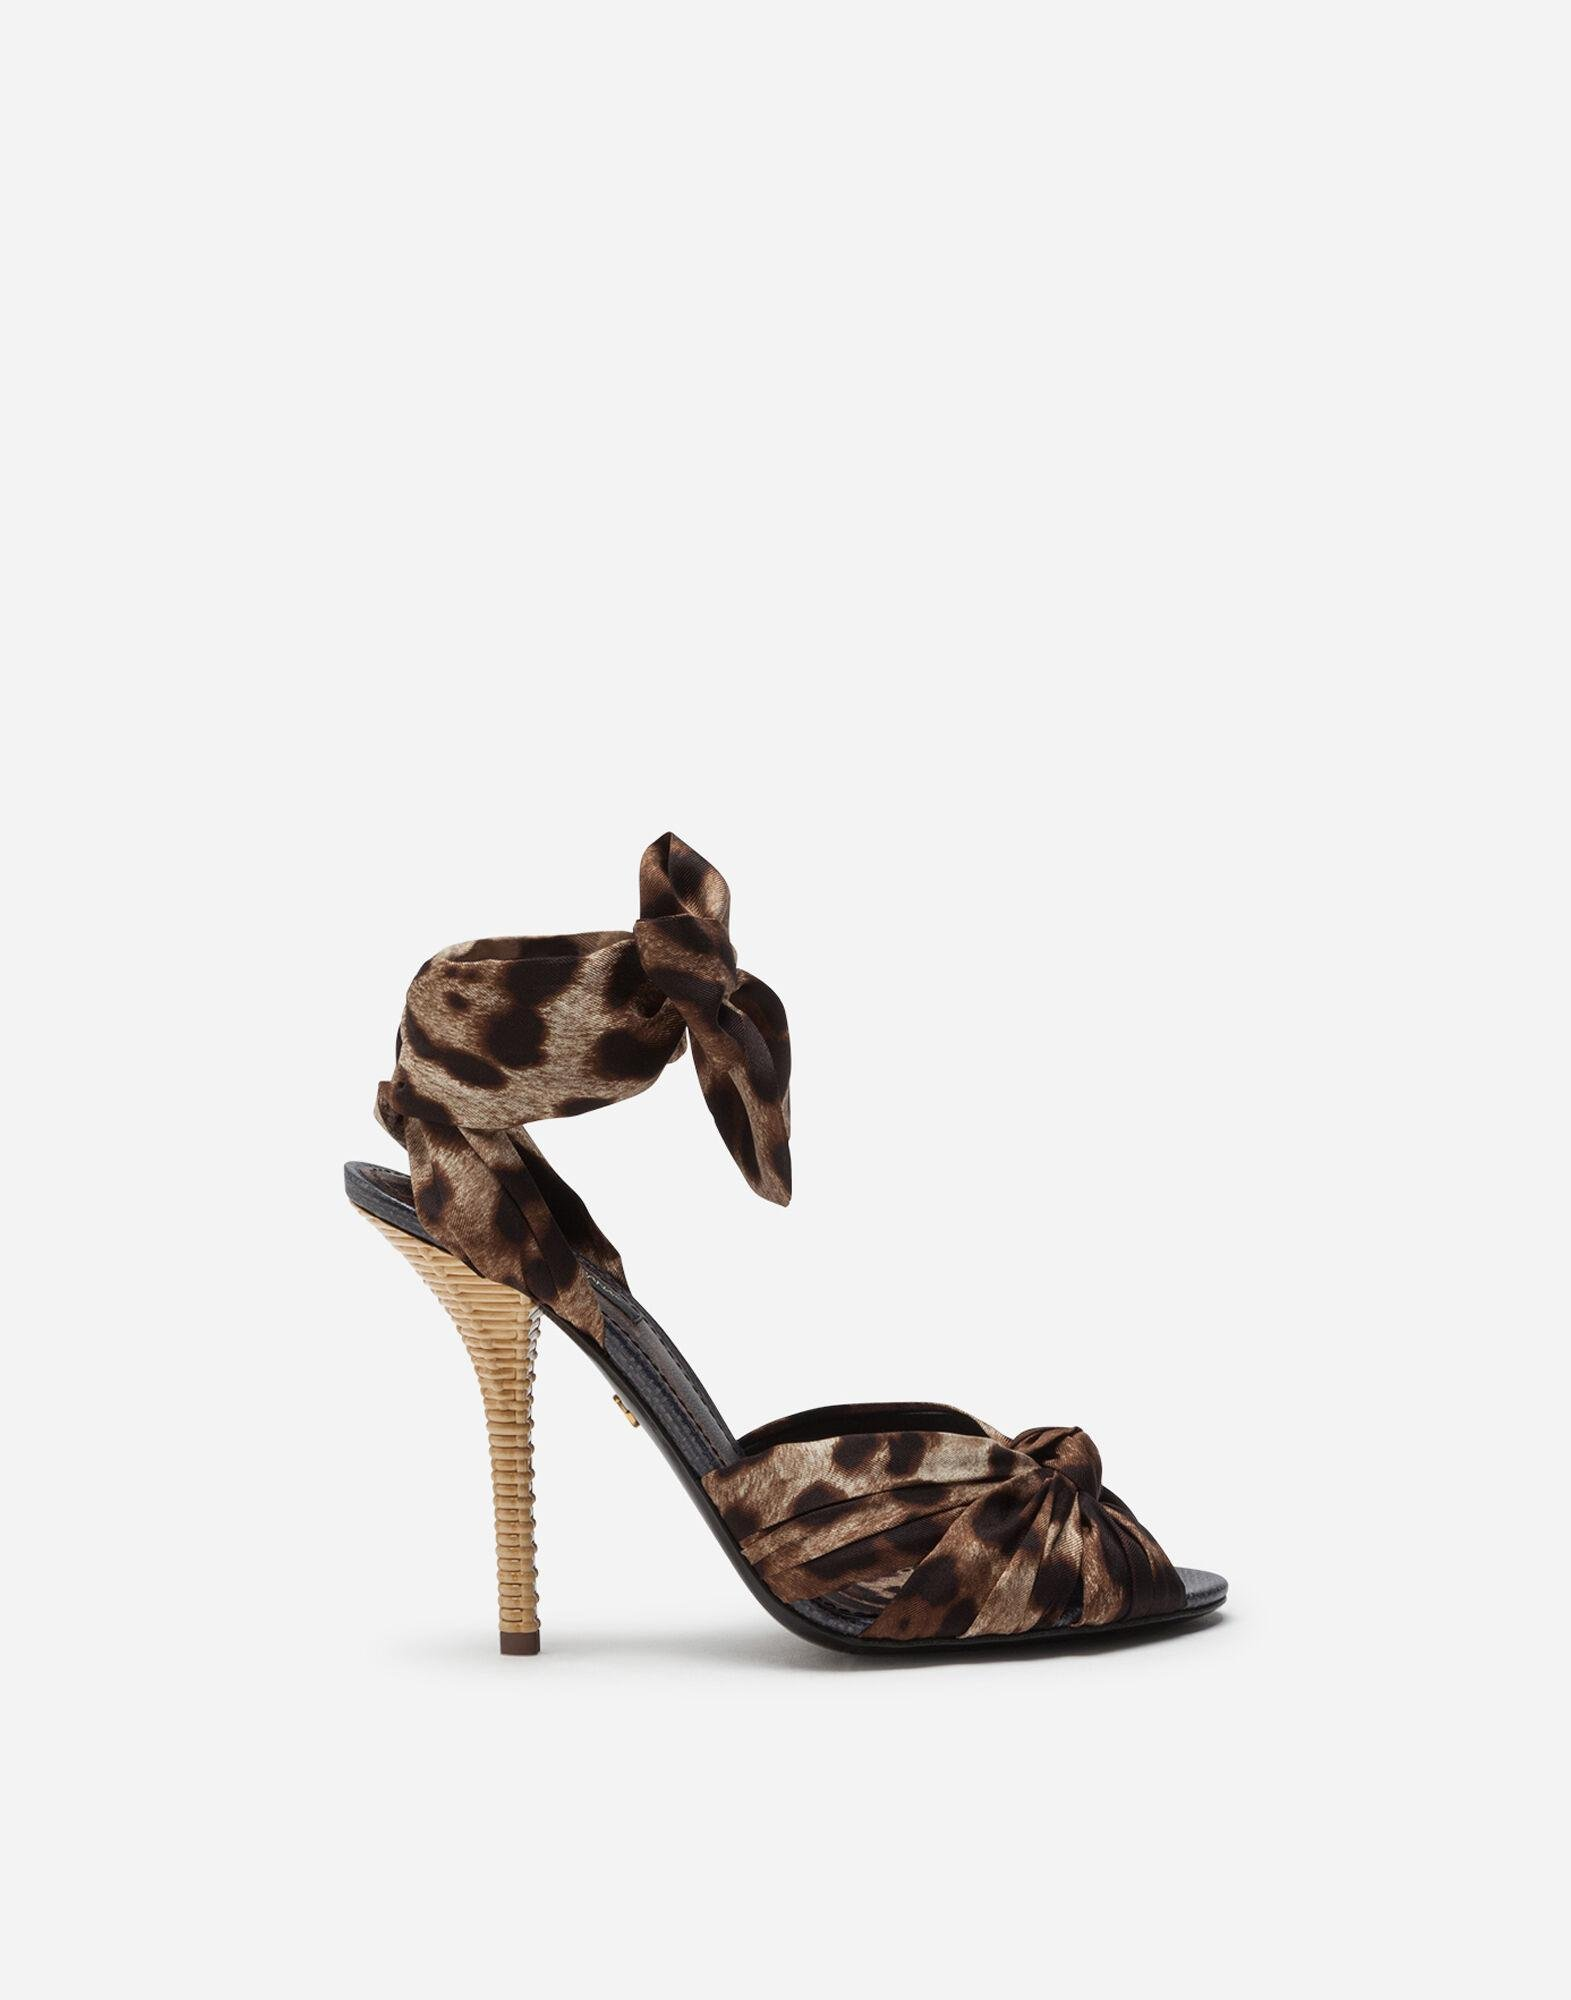 Twill sandals with leopard print and heel in wicker